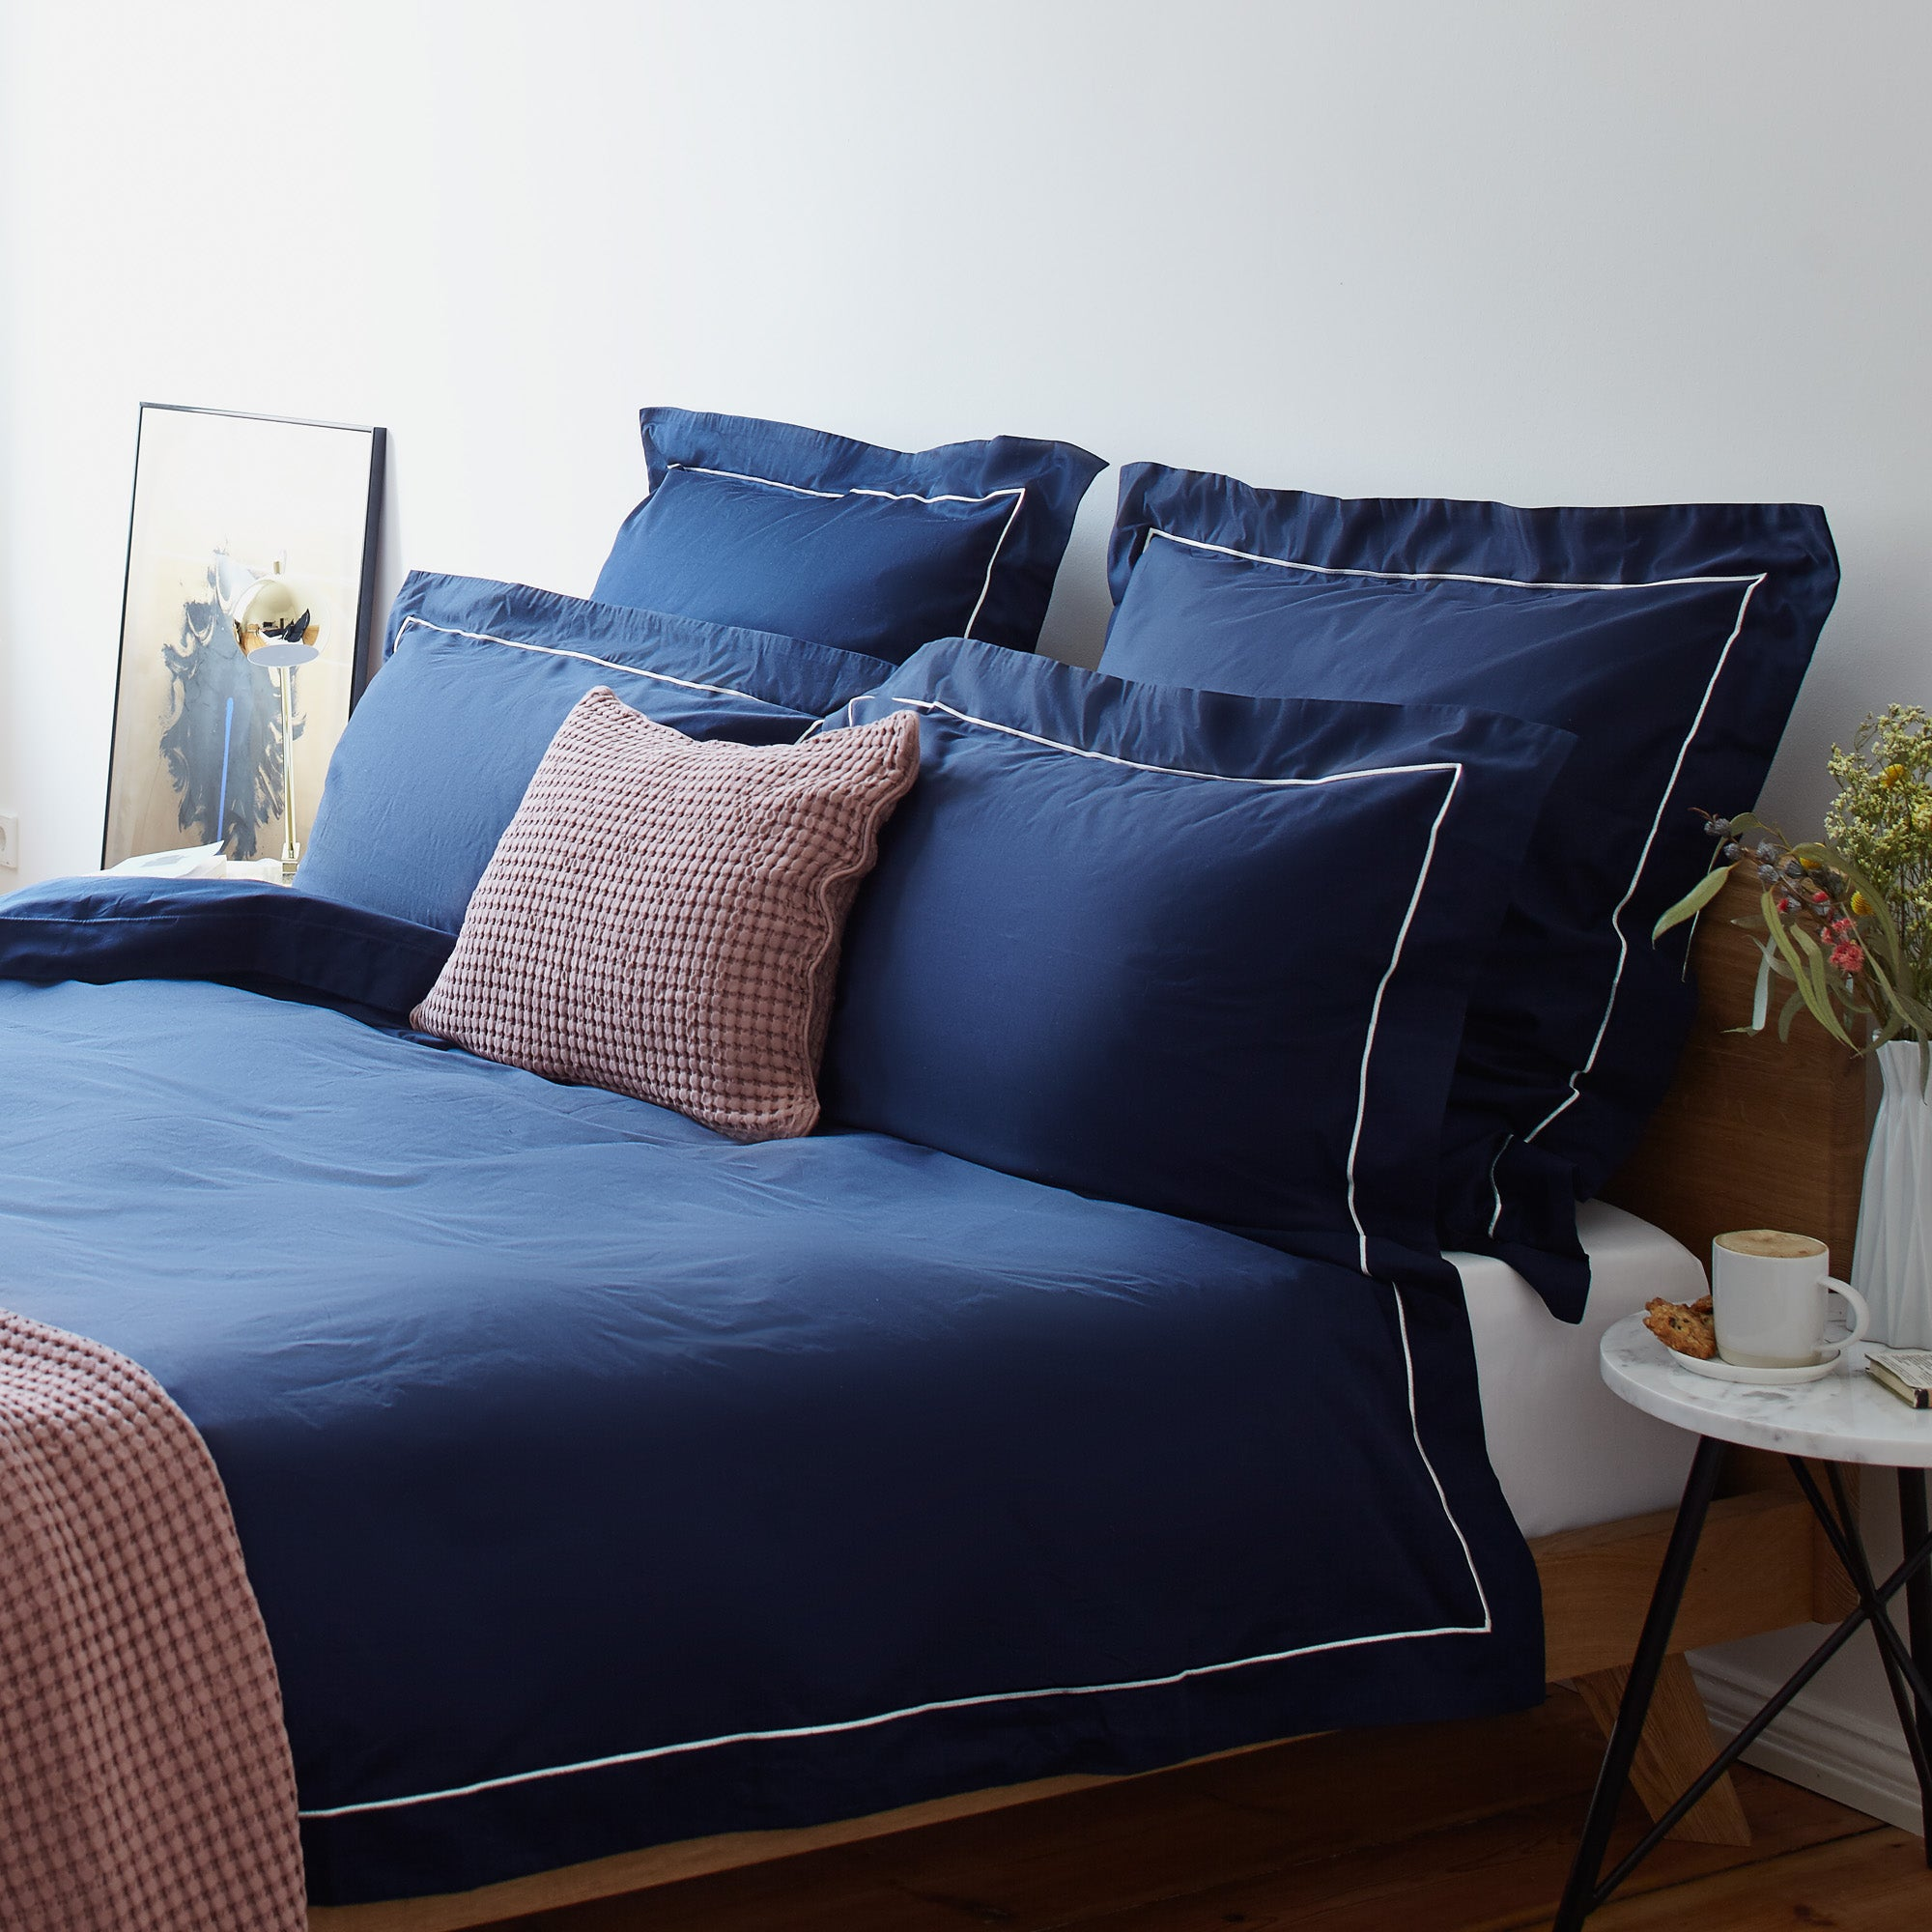 Karakol Bed Linen in dark blue & natural white | Home & Living inspiration | URBANARA